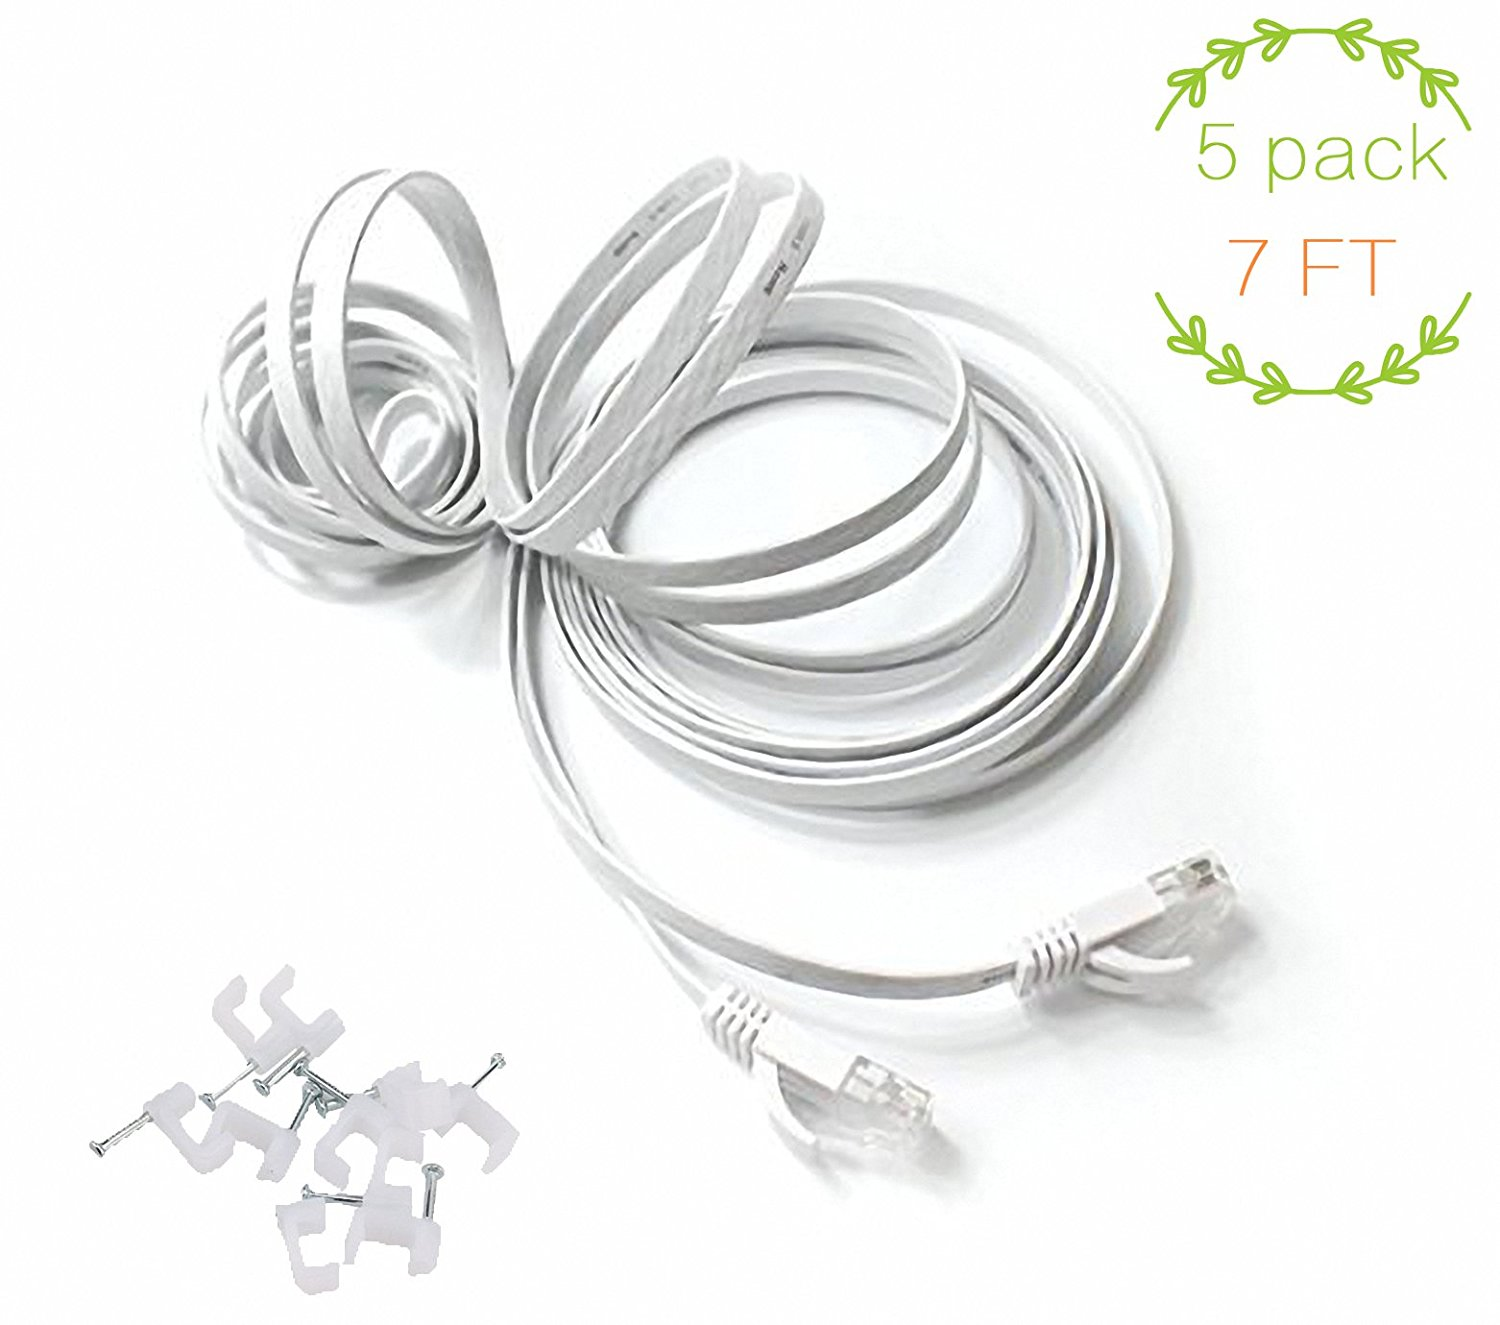 comtelek? High Speed Cat6 RJ45 FLAT TANGLE FREE Snagless Network Cable - Patch - Ethernet / Moderm / Router / LAN / Printer / MAC / Laptop / PS2 & PS3 / XBox & XBox 360 - 7 Feet white